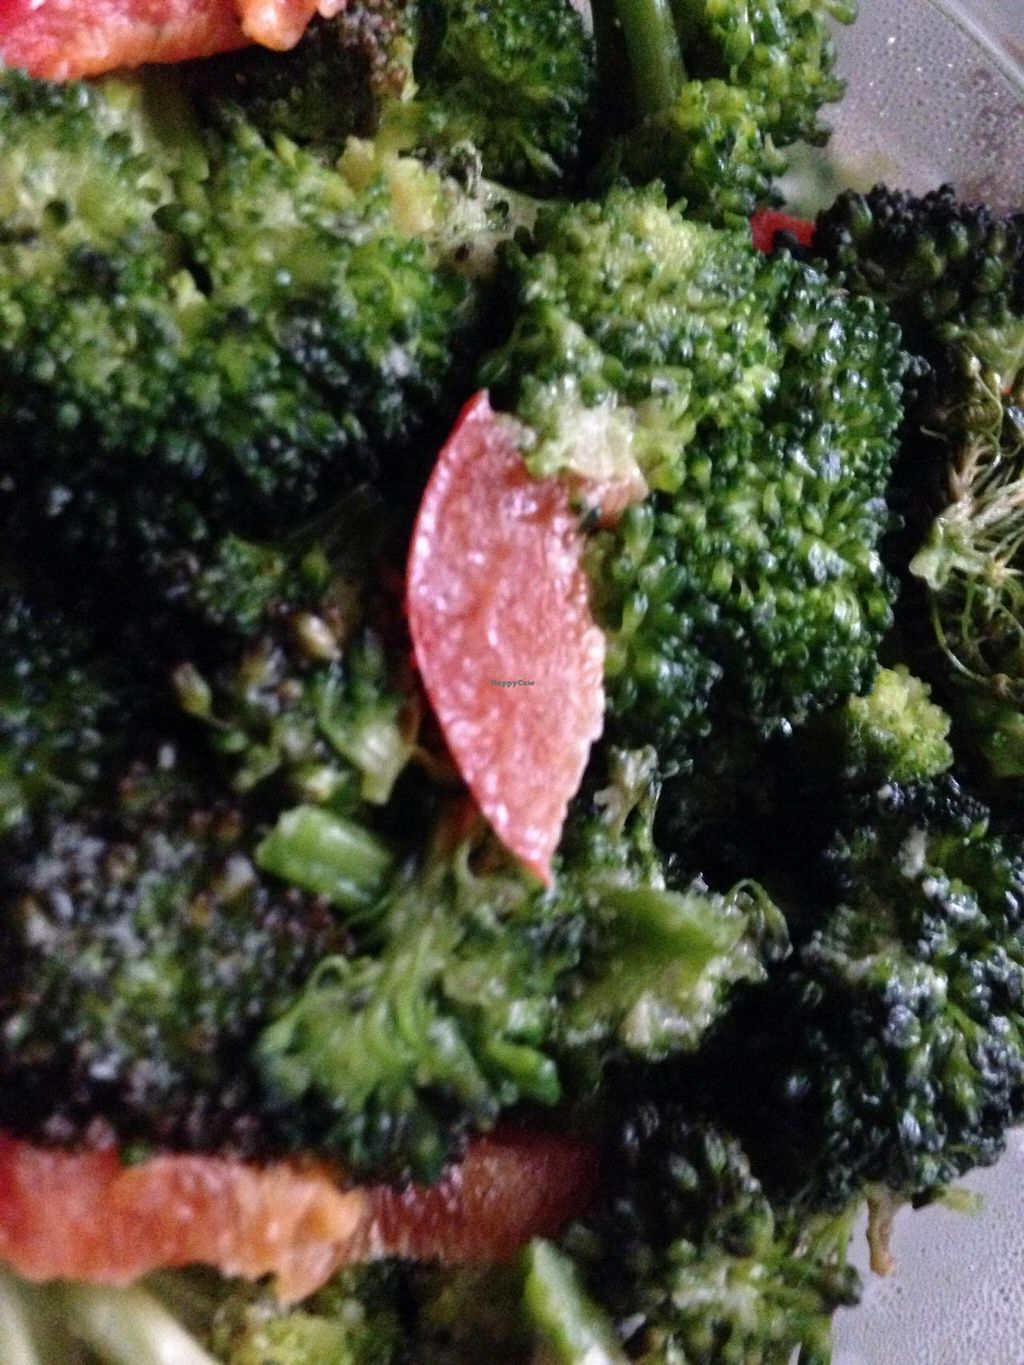 """Photo of Senbeb Cafe  by <a href=""""/members/profile/cookiem"""">cookiem</a> <br/>Raw broccoli and red pepper side order <br/> July 8, 2014  - <a href='/contact/abuse/image/13840/73563'>Report</a>"""